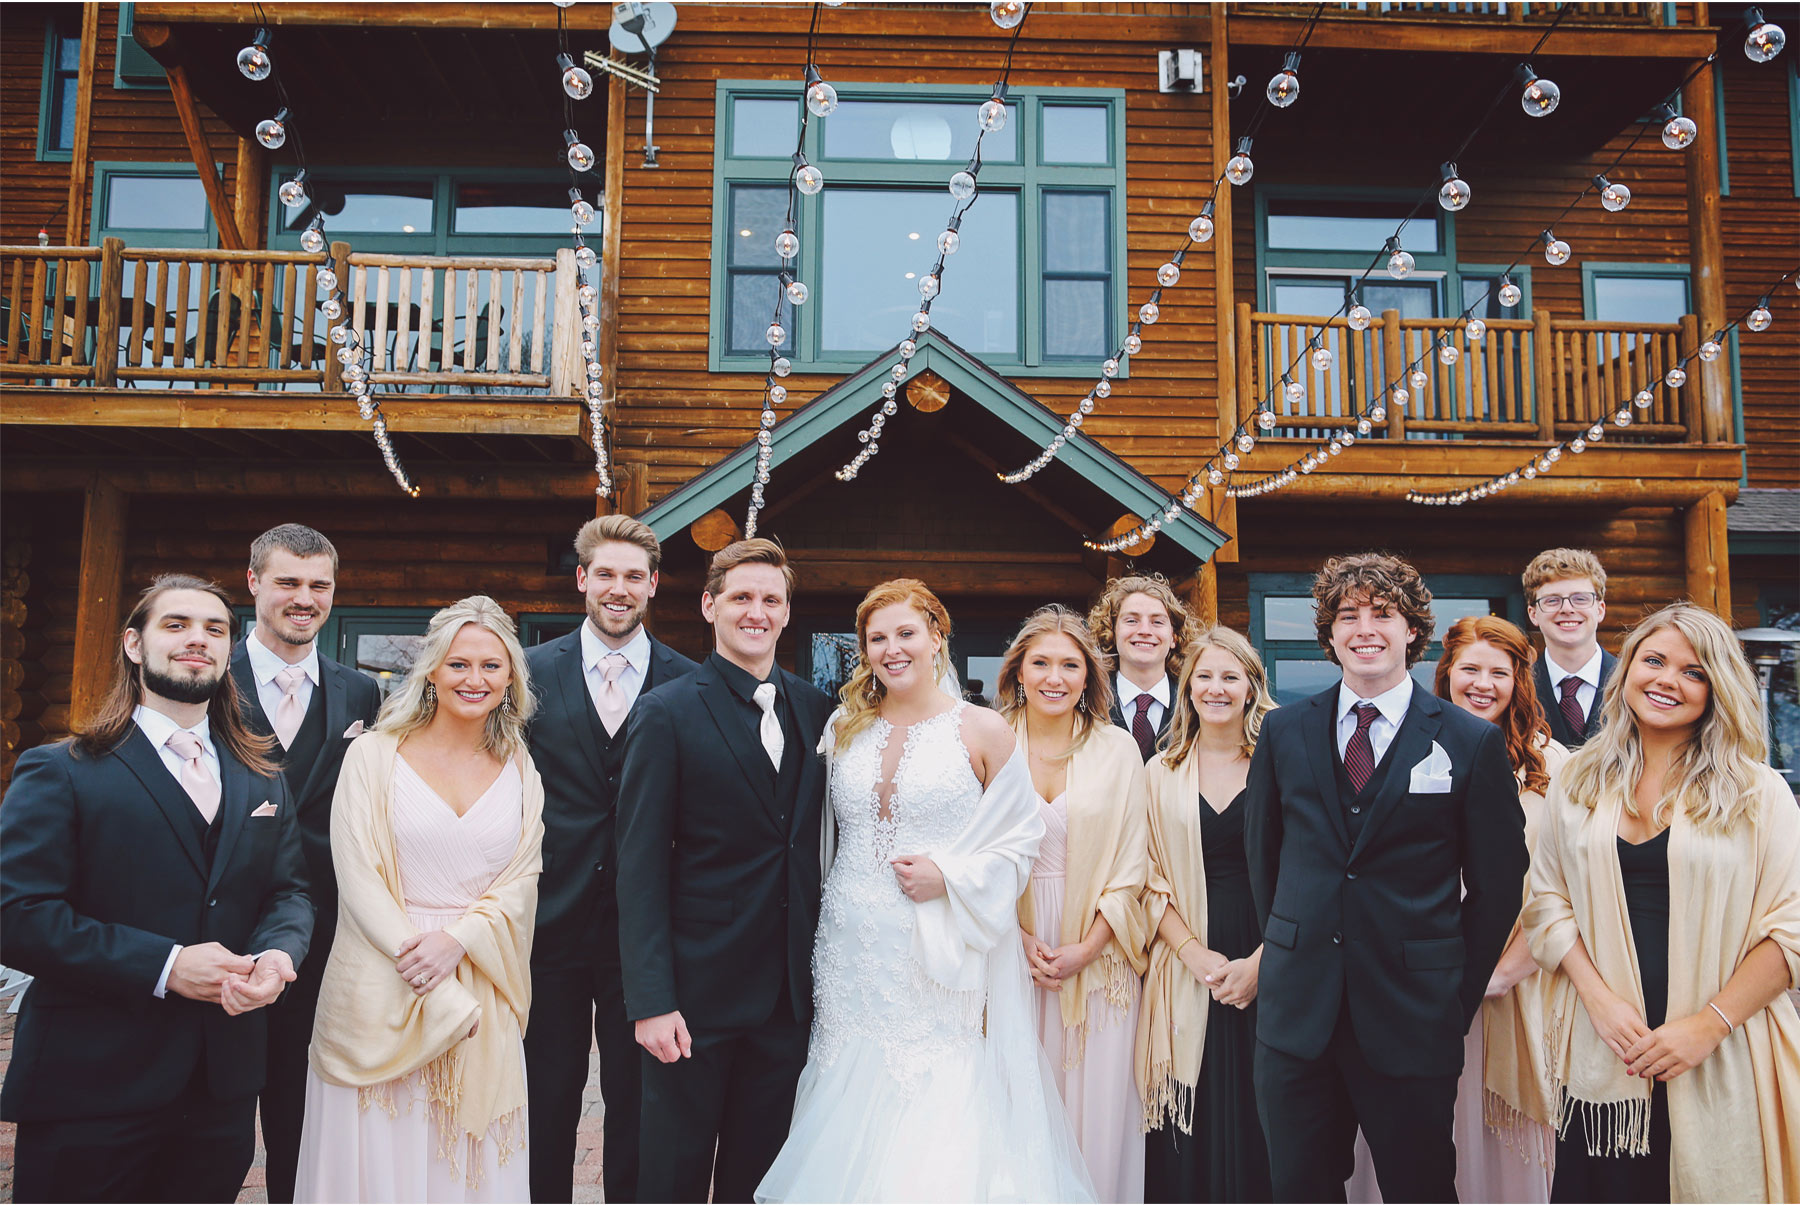 12-Minnesota-Wedding-by-Andrew-Vick-Photography-Grand-Superior-Lodge-Duluth-Two-Harbors-Wedding-Party-Groomsmen-Bridesmaids-Outdoor-Veronica-and-Tyler.jpg